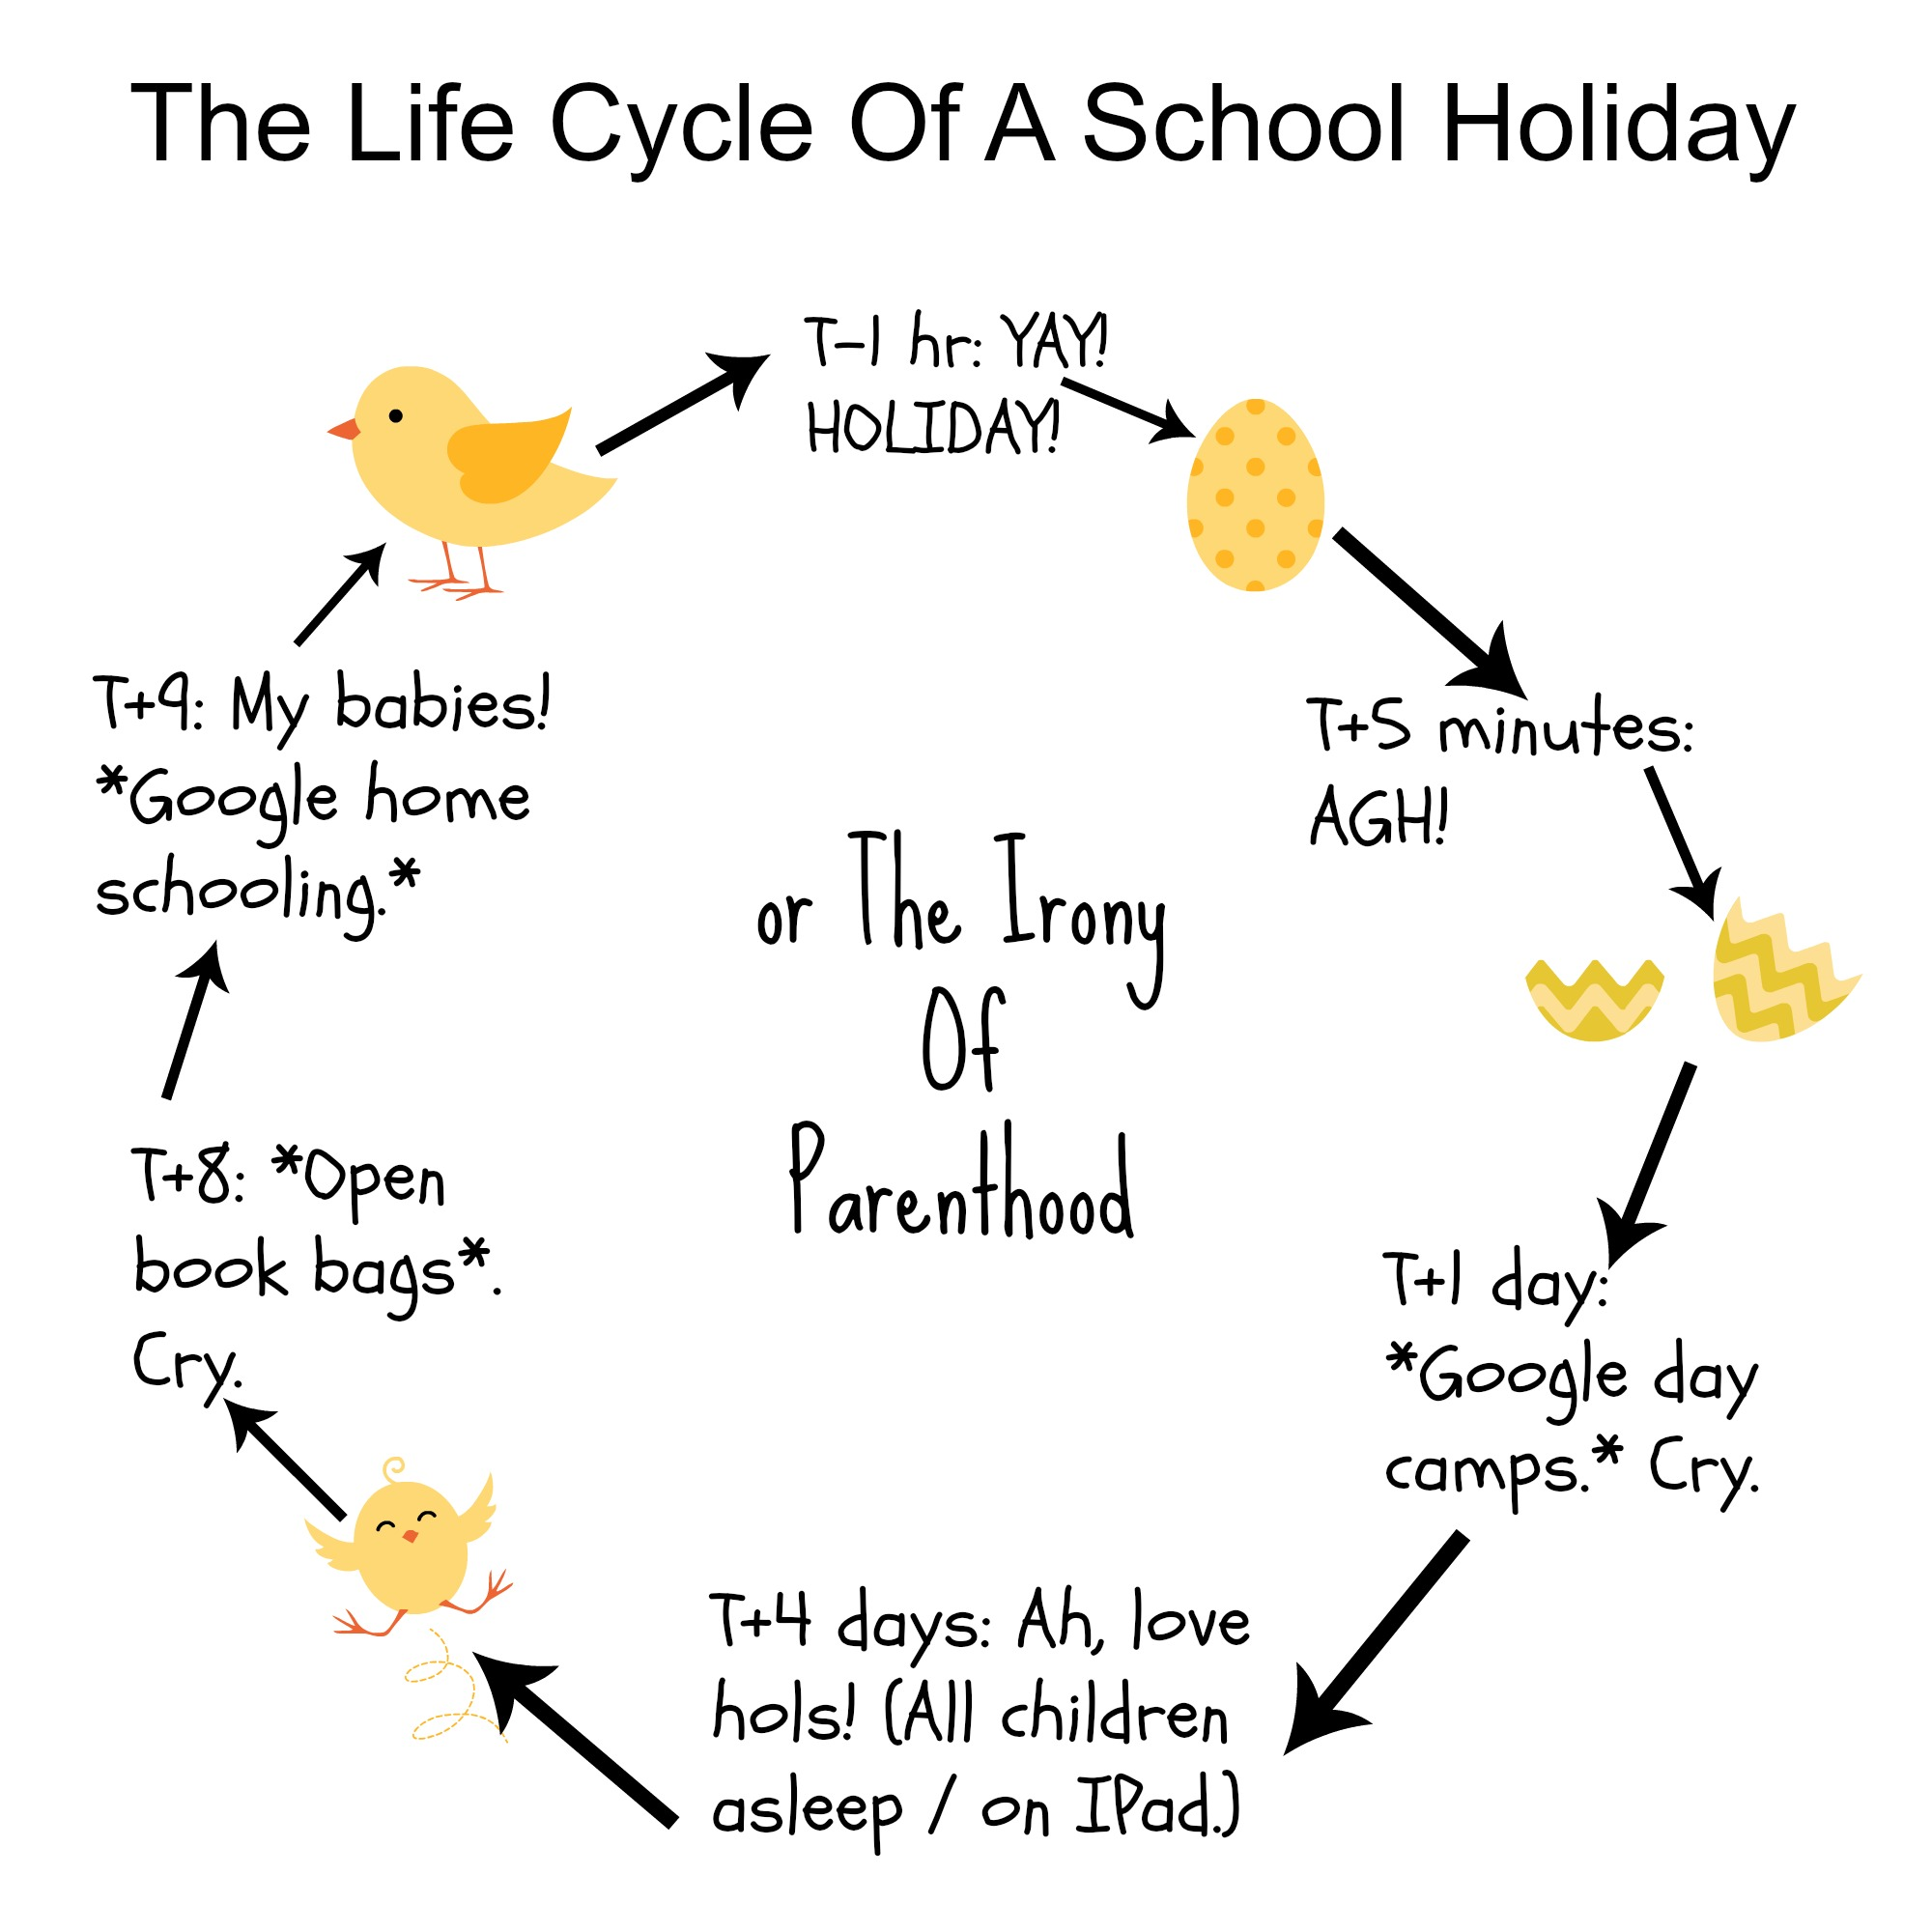 The Life Cycle Of A School Holiday